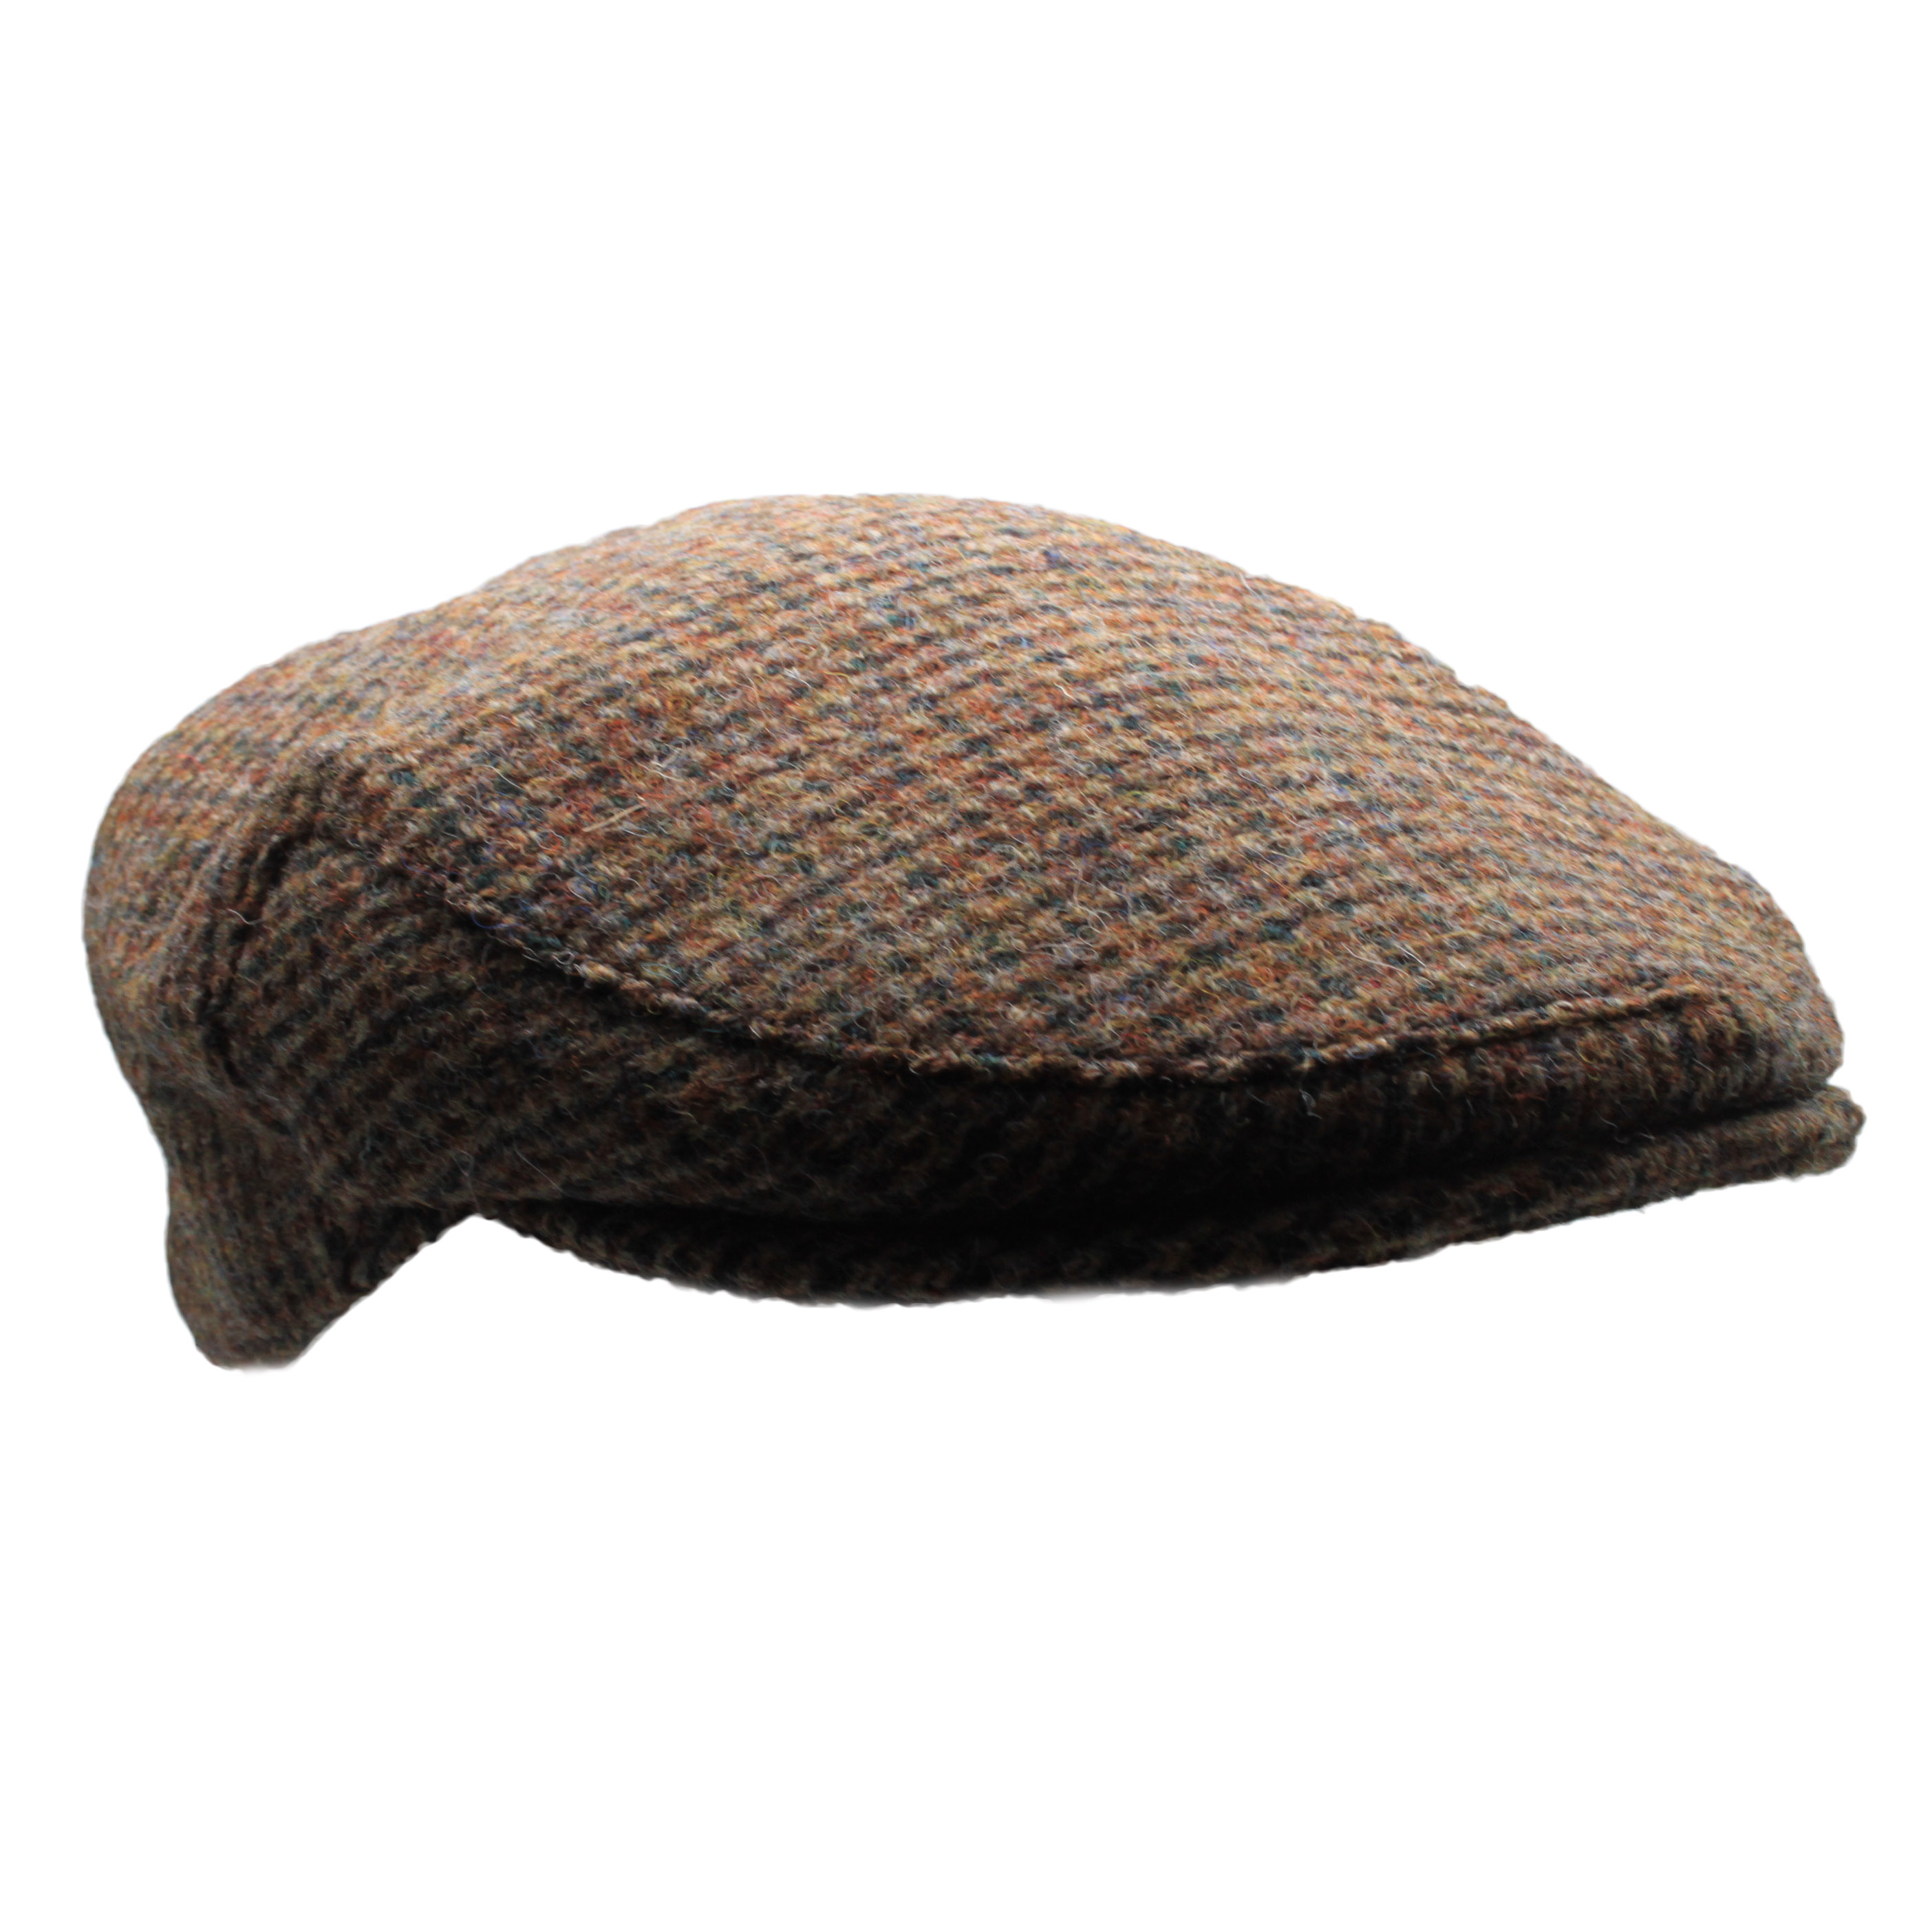 cc8bb70d2 Details about New Country 100% Scottish Harris Tweed Flat Cap - Brown  Dogtooth